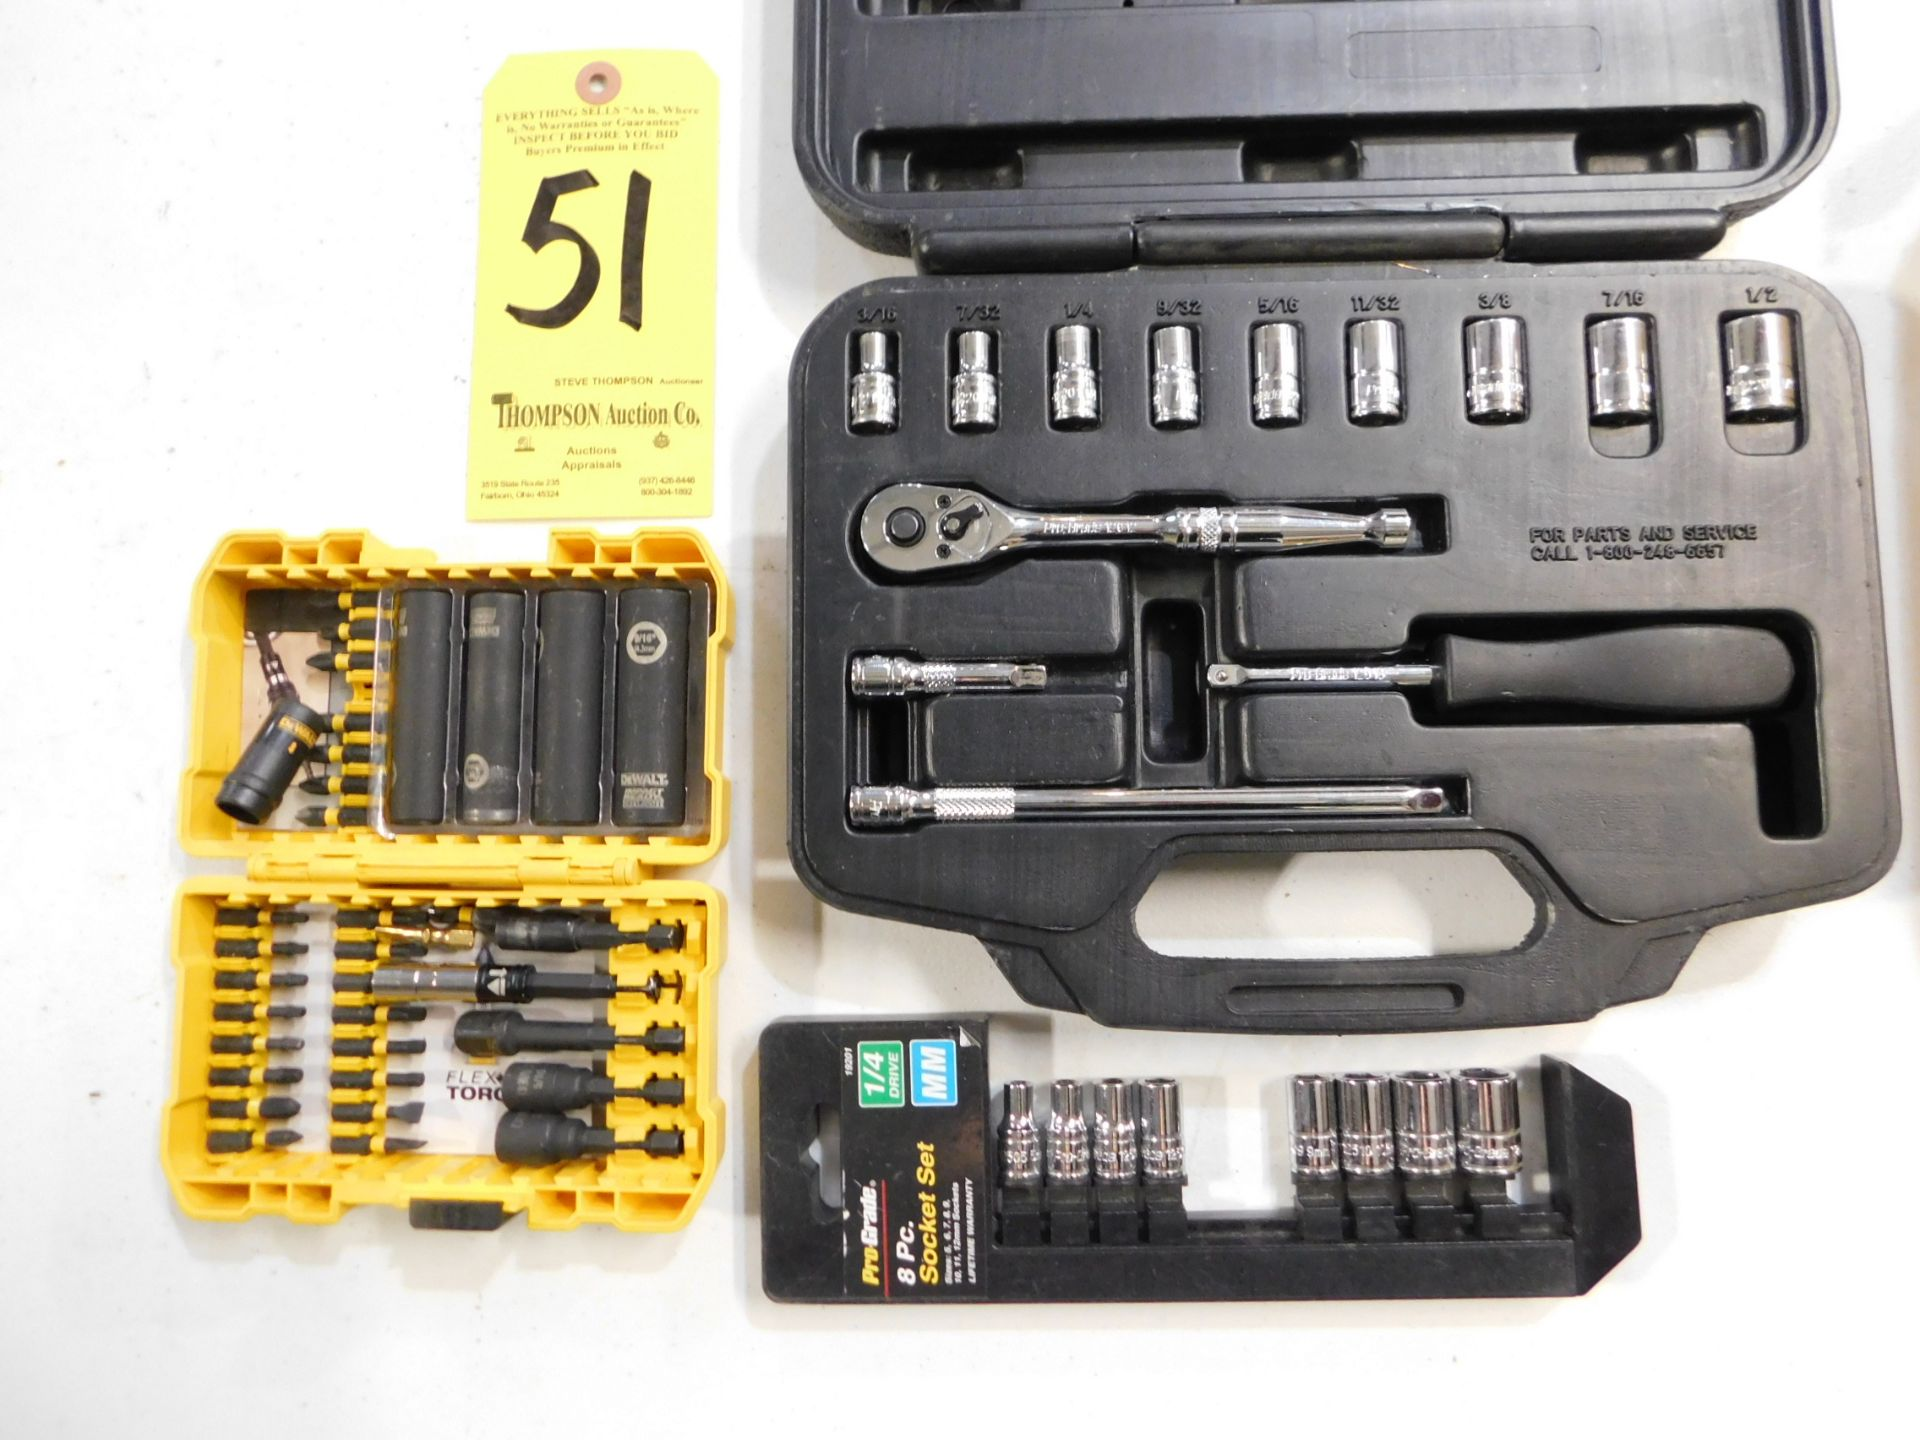 Lot 51 - Ratchet and Socket Set, Sockets, and Dewalt Driver Kit, Lot Location 3204 Olympia Dr. A,